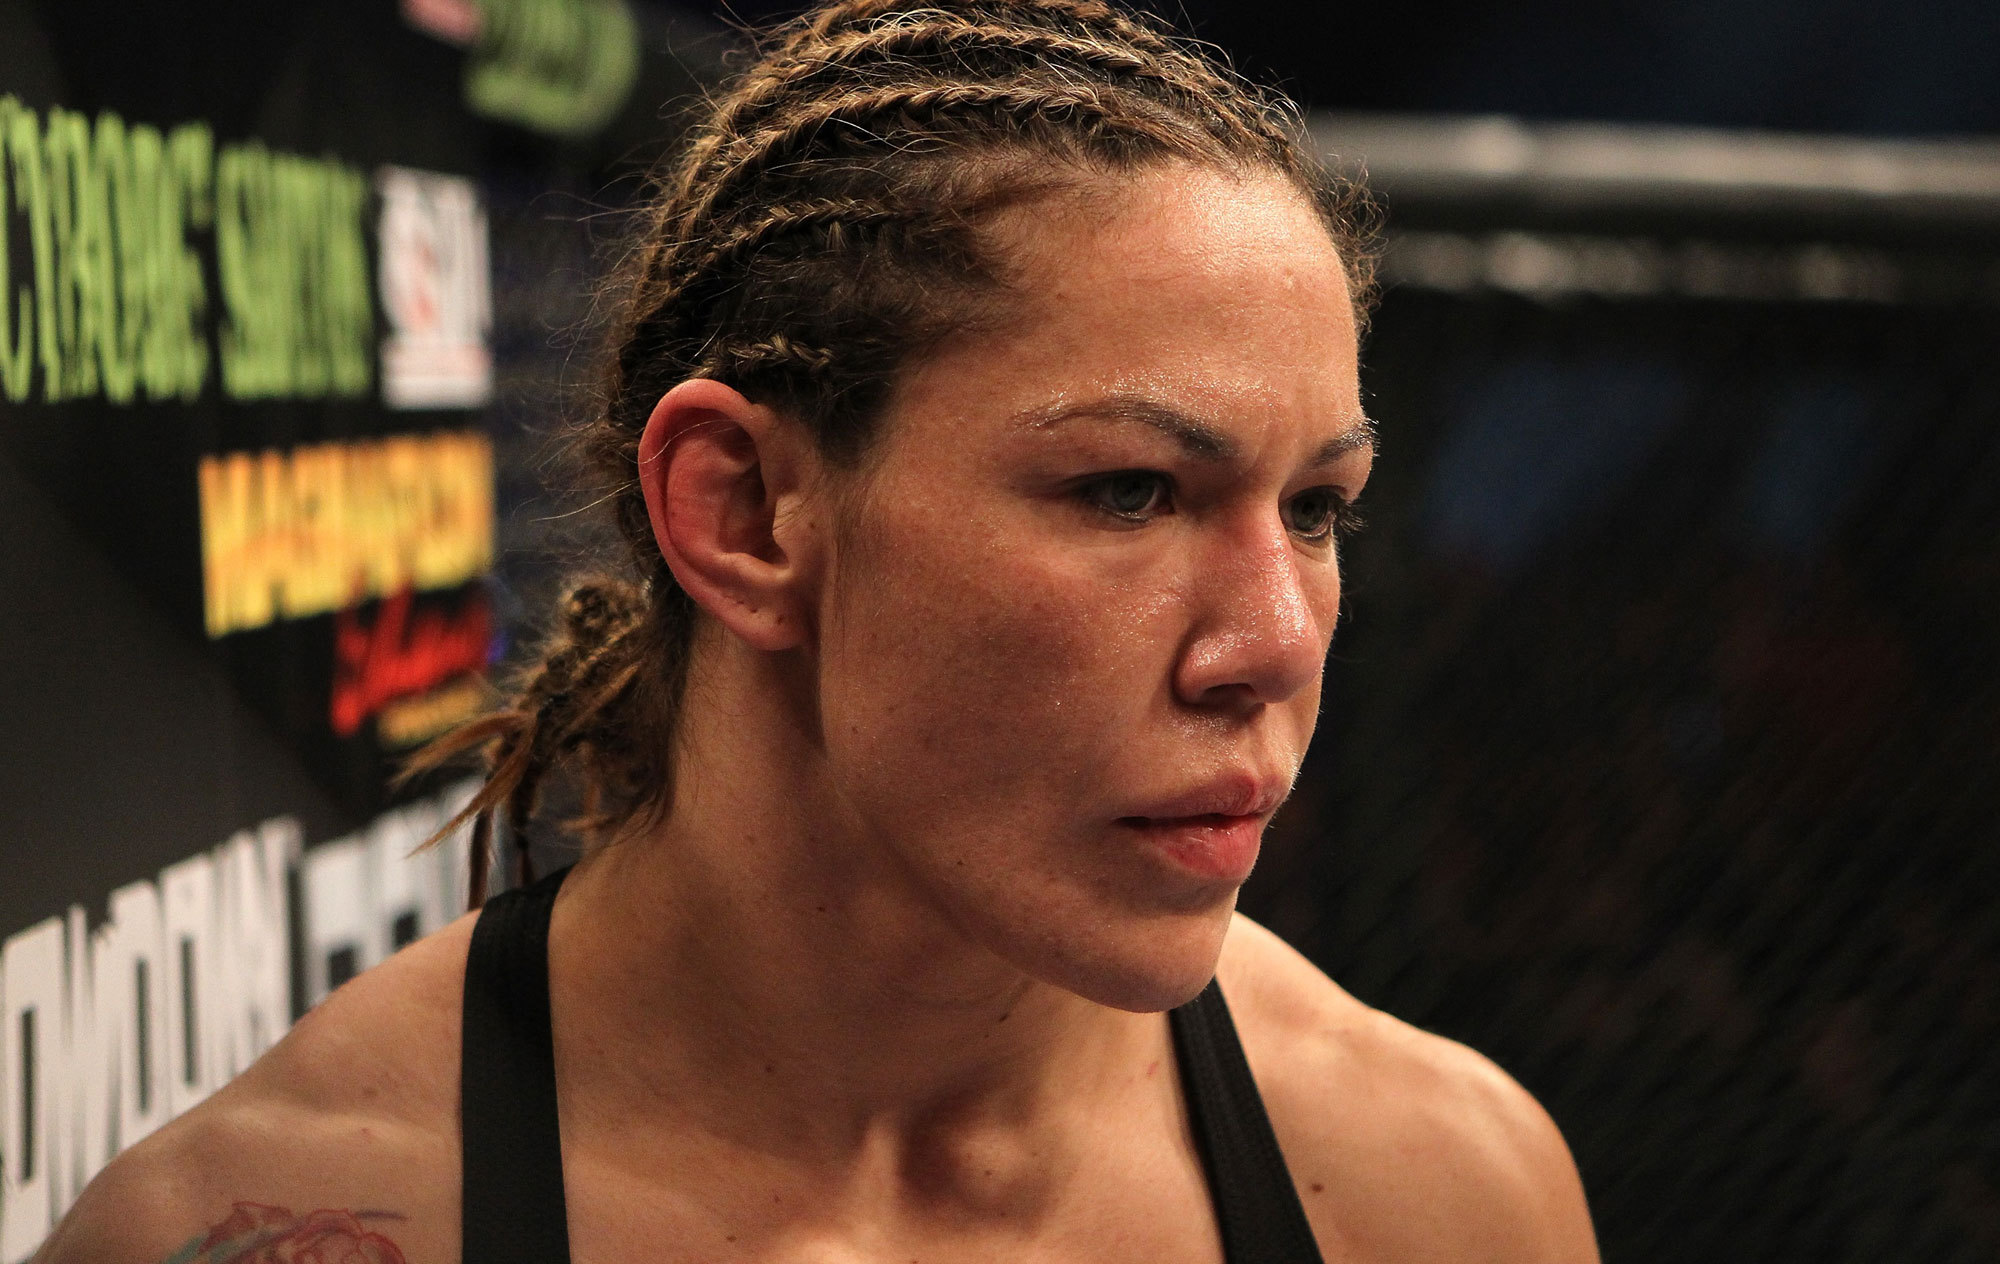 Cris Cyborg Wallpapers Images Photos Pictures Backgrounds